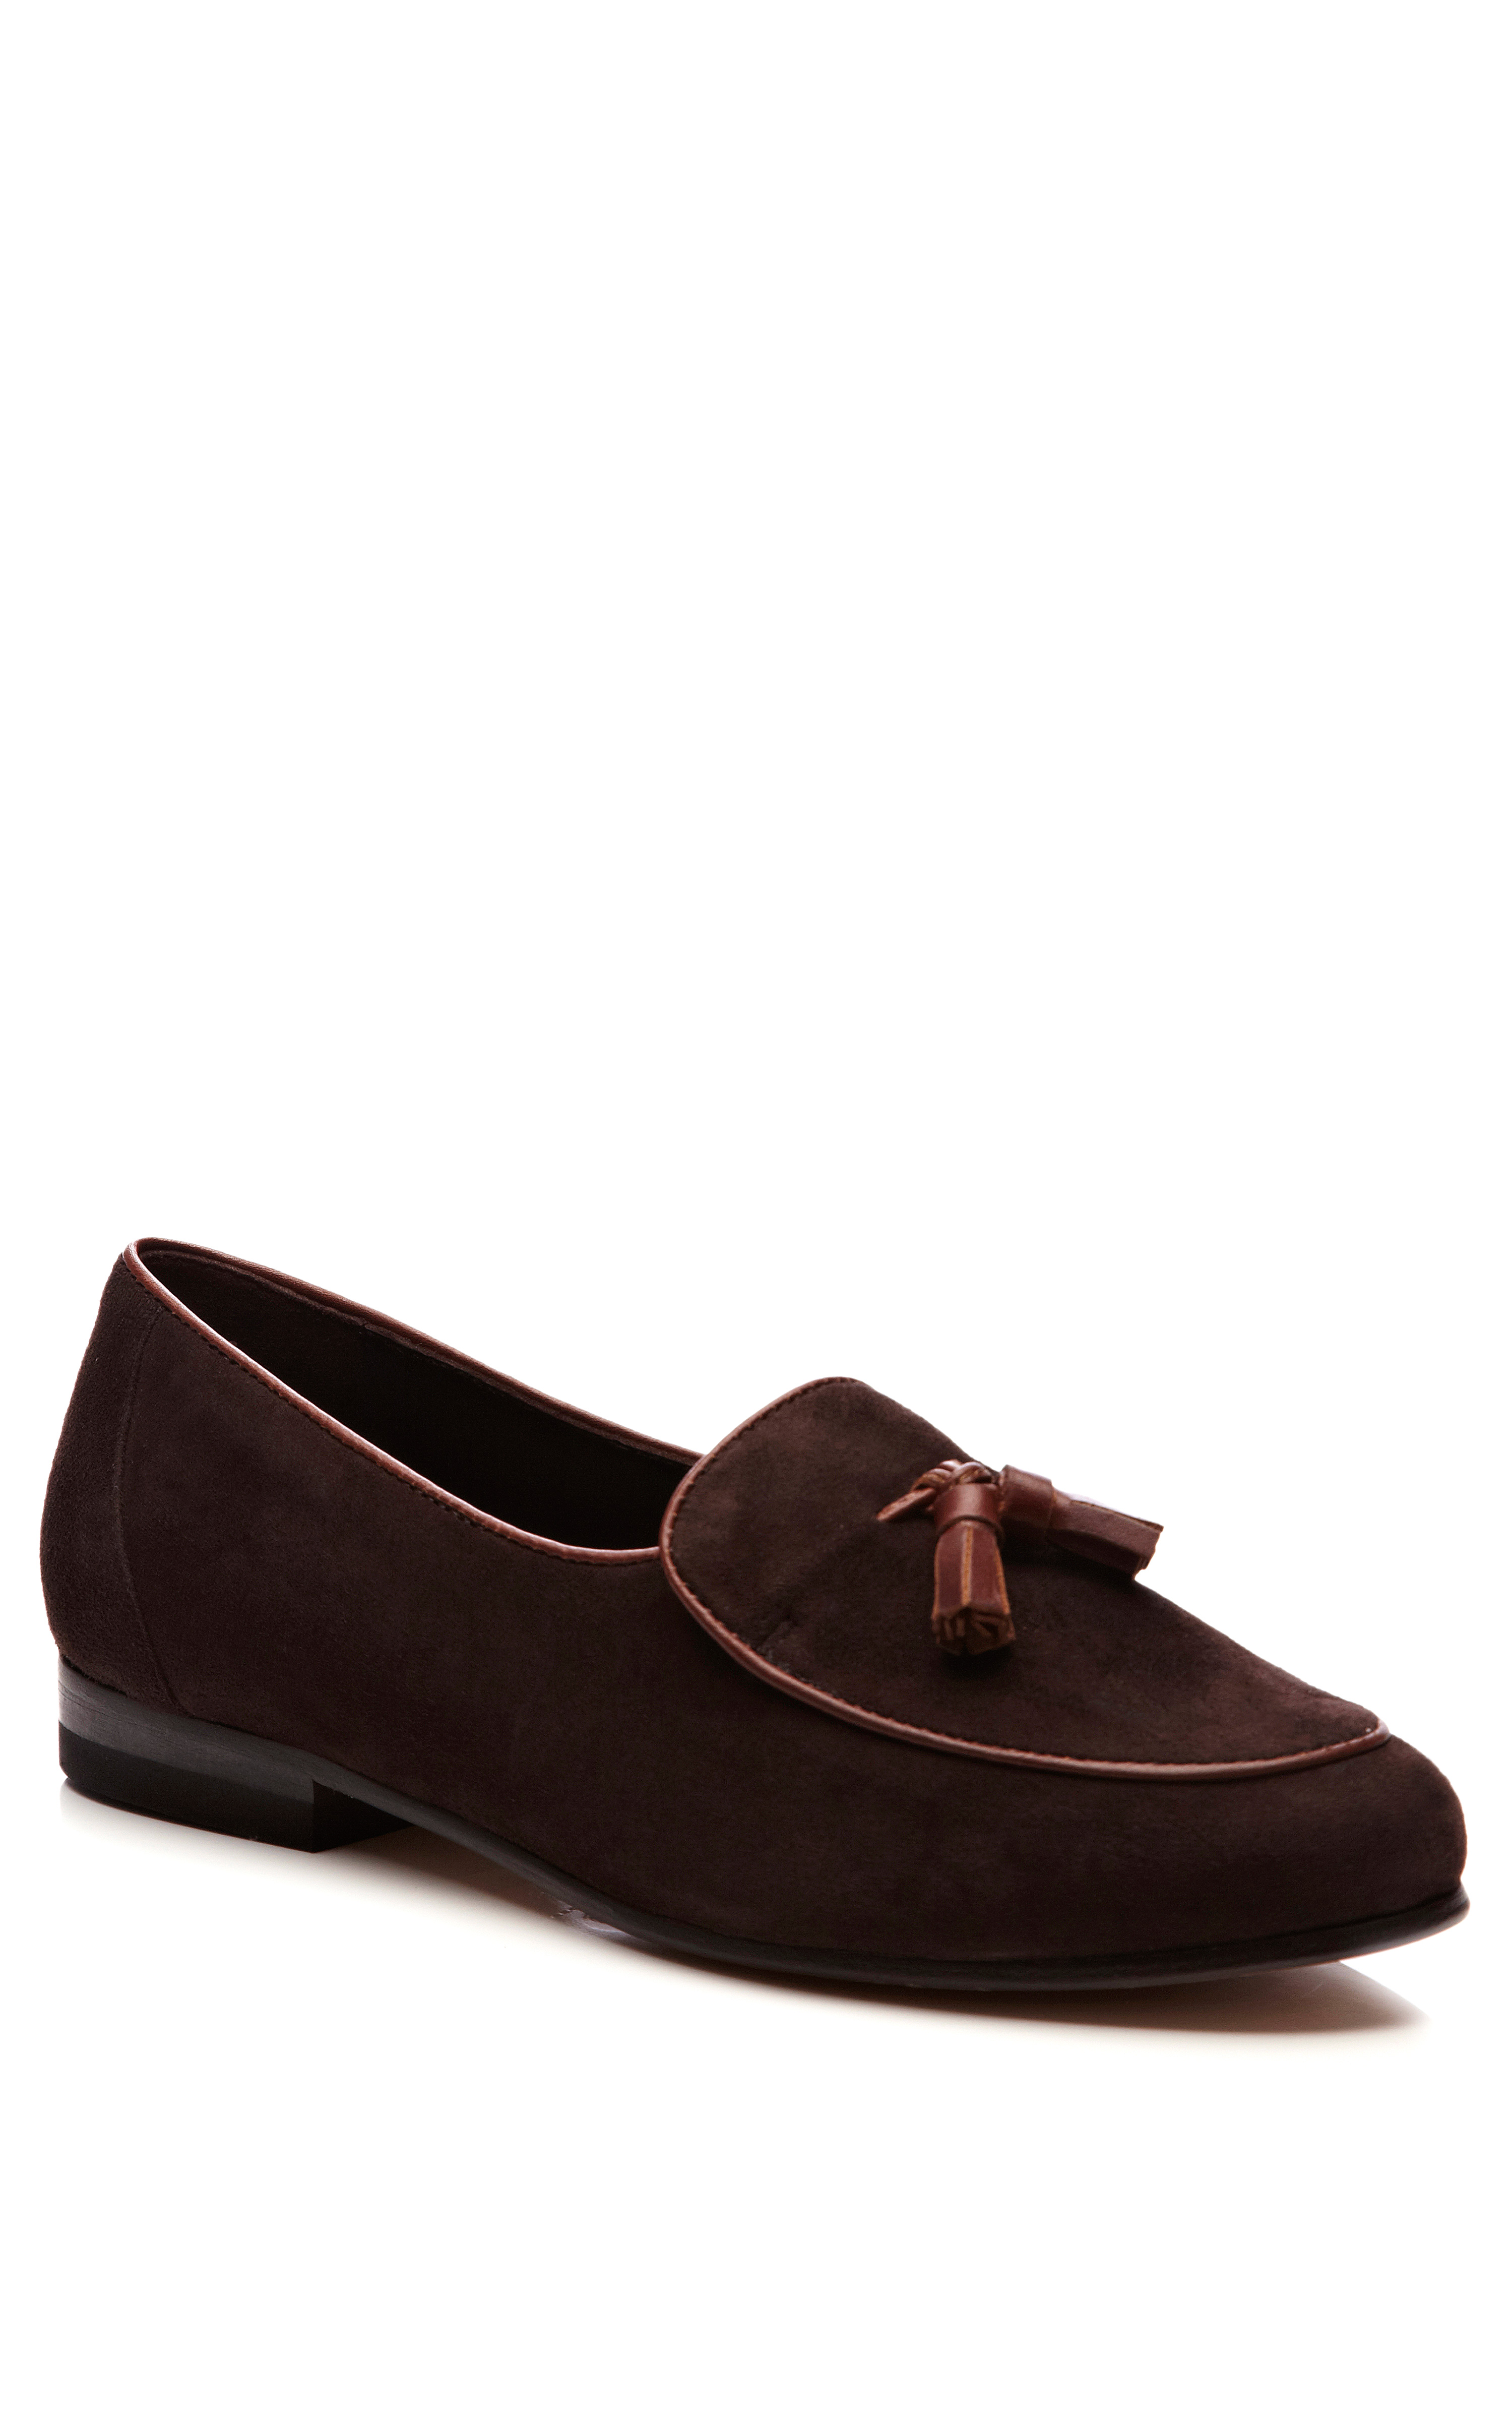 Cb Made In Italy Womens Handmade Tasseled Suede Loafers In